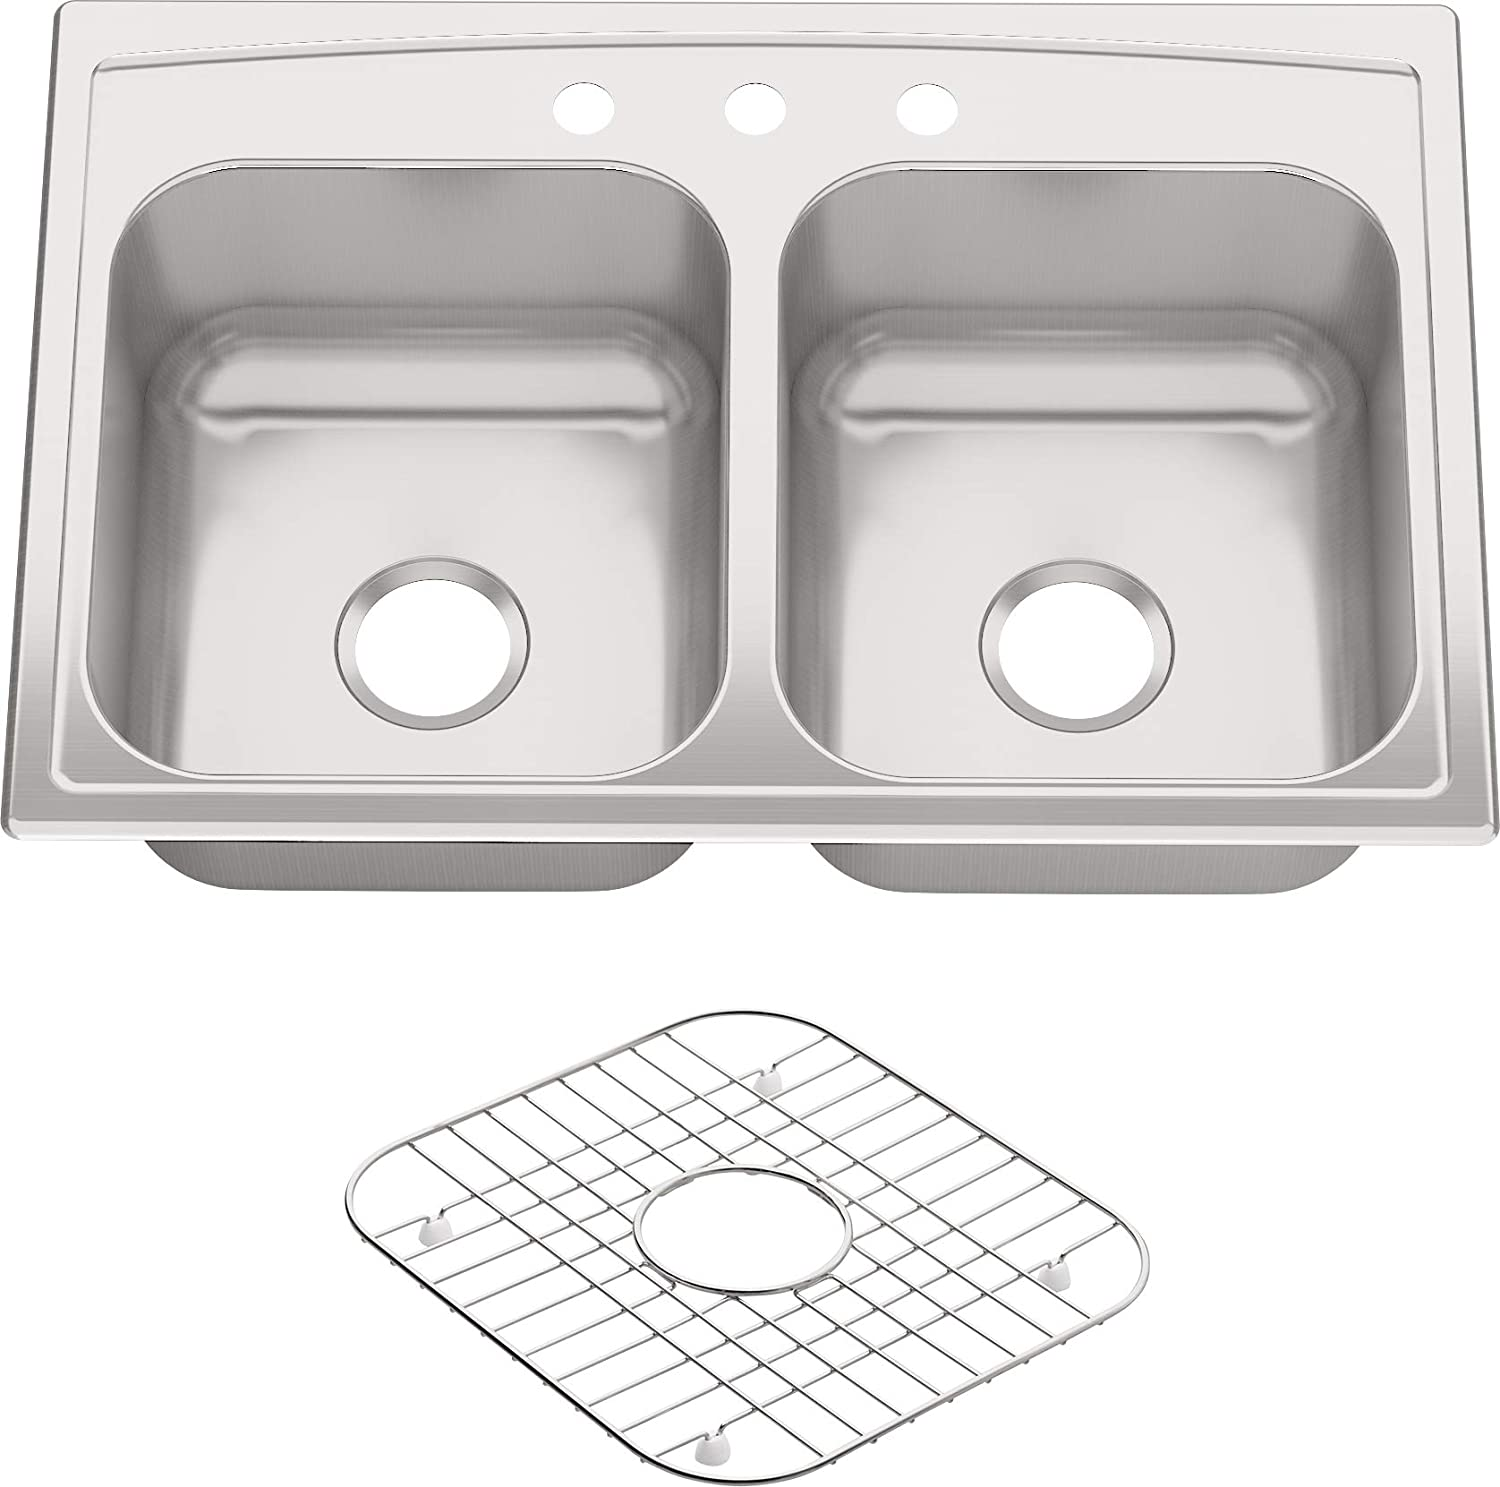 KOHLER K-3847-3-NA Toccata Top-Mount Double-Equal Bowl Kitchen Sink with 3 Faucet Holes, Stainless Steel